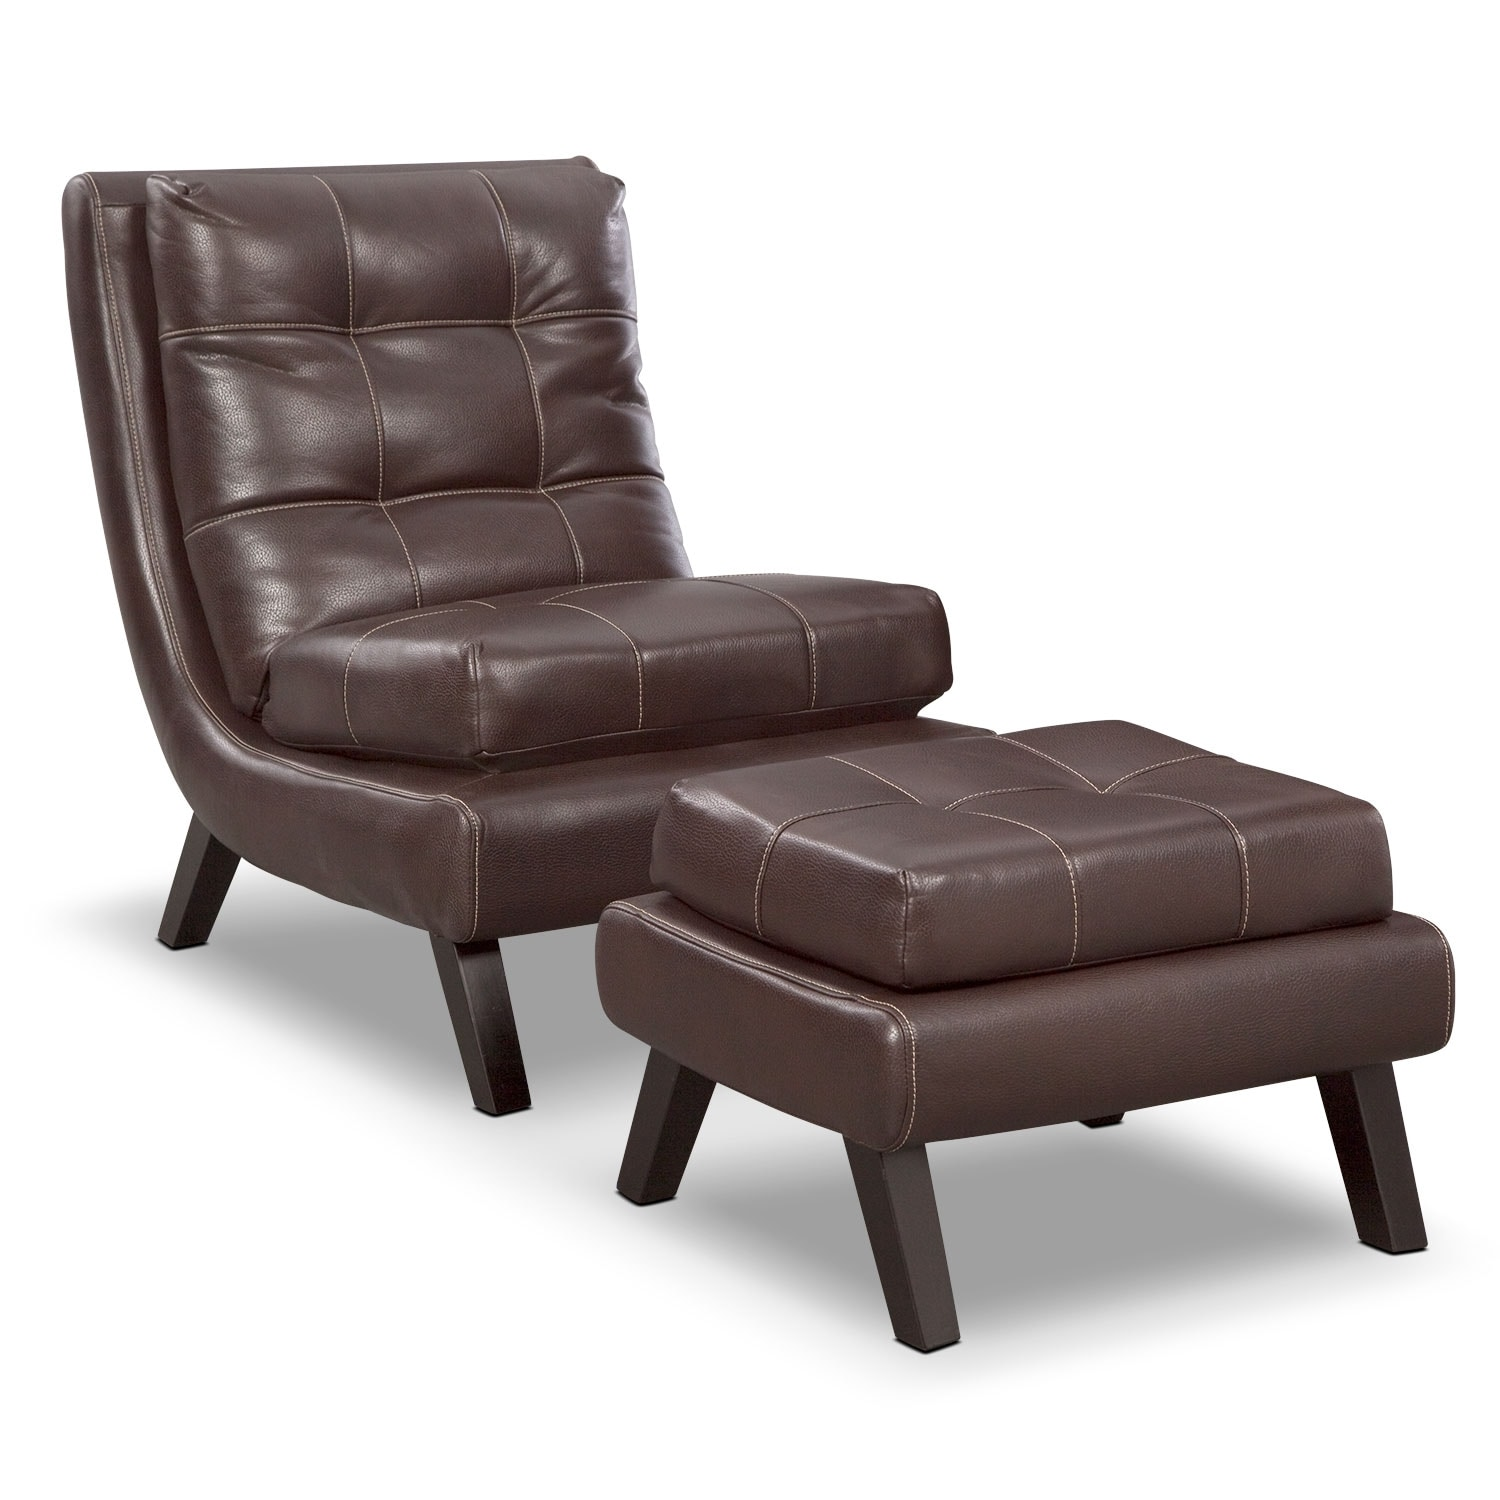 accent chairs with ottoman ergonomic chair usa mott and furniture